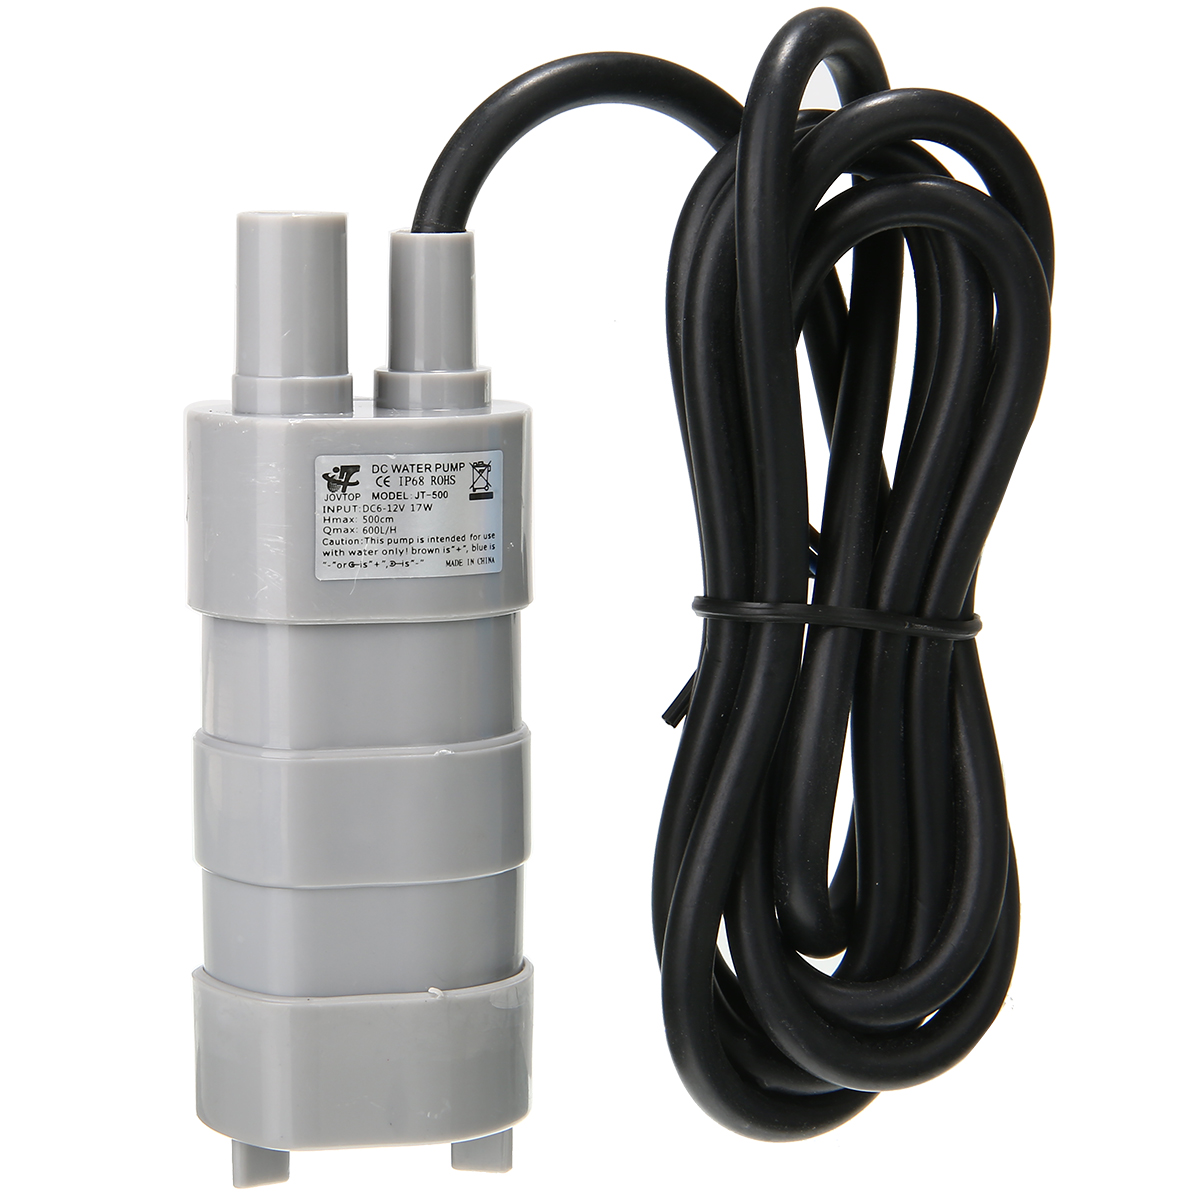 600L/H 12V High Flow Water Pump Submersible Water Pump 5M For Fish Tank Change Water Camper Caravan Motorhome